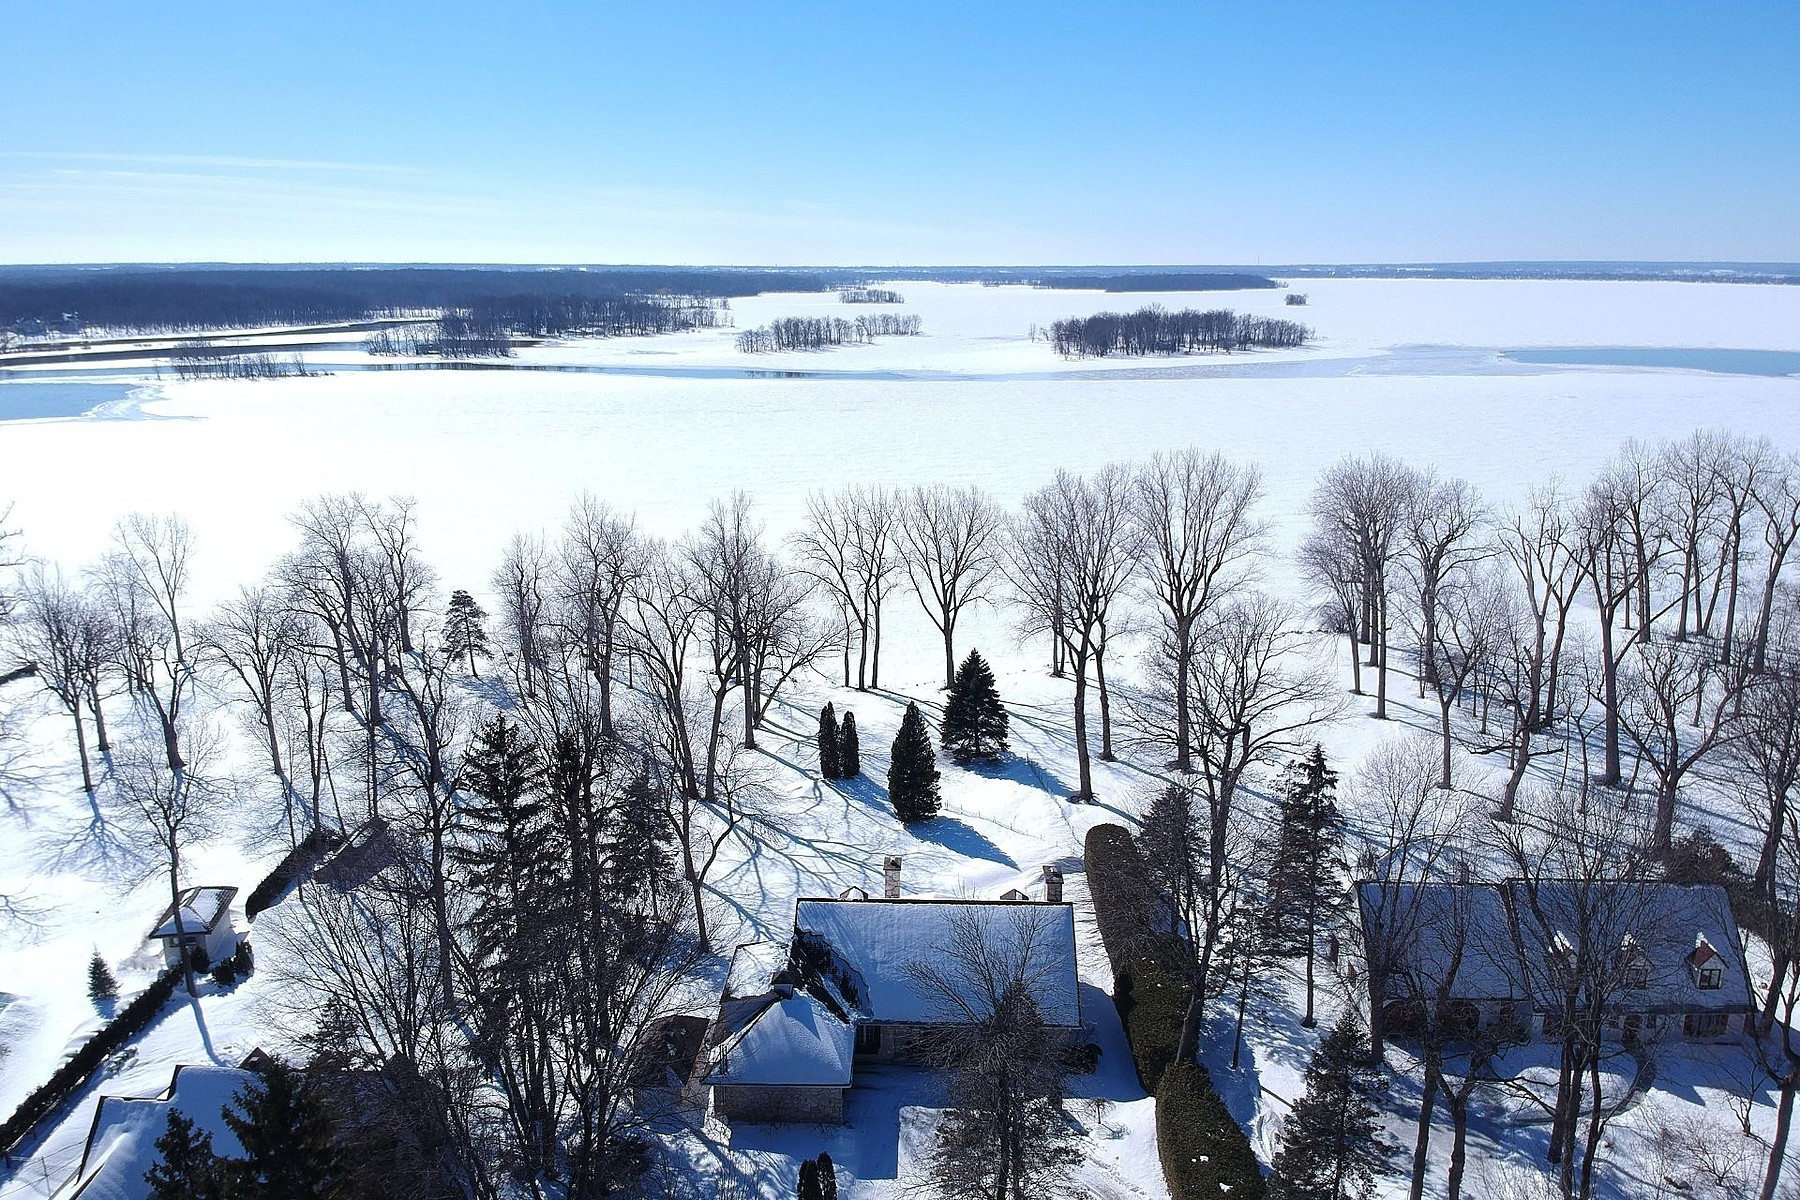 Single Family Homes for Sale at Senneville, Montréal 20 Ch. de Senneville Senneville, Quebec H9X1B6 Canada